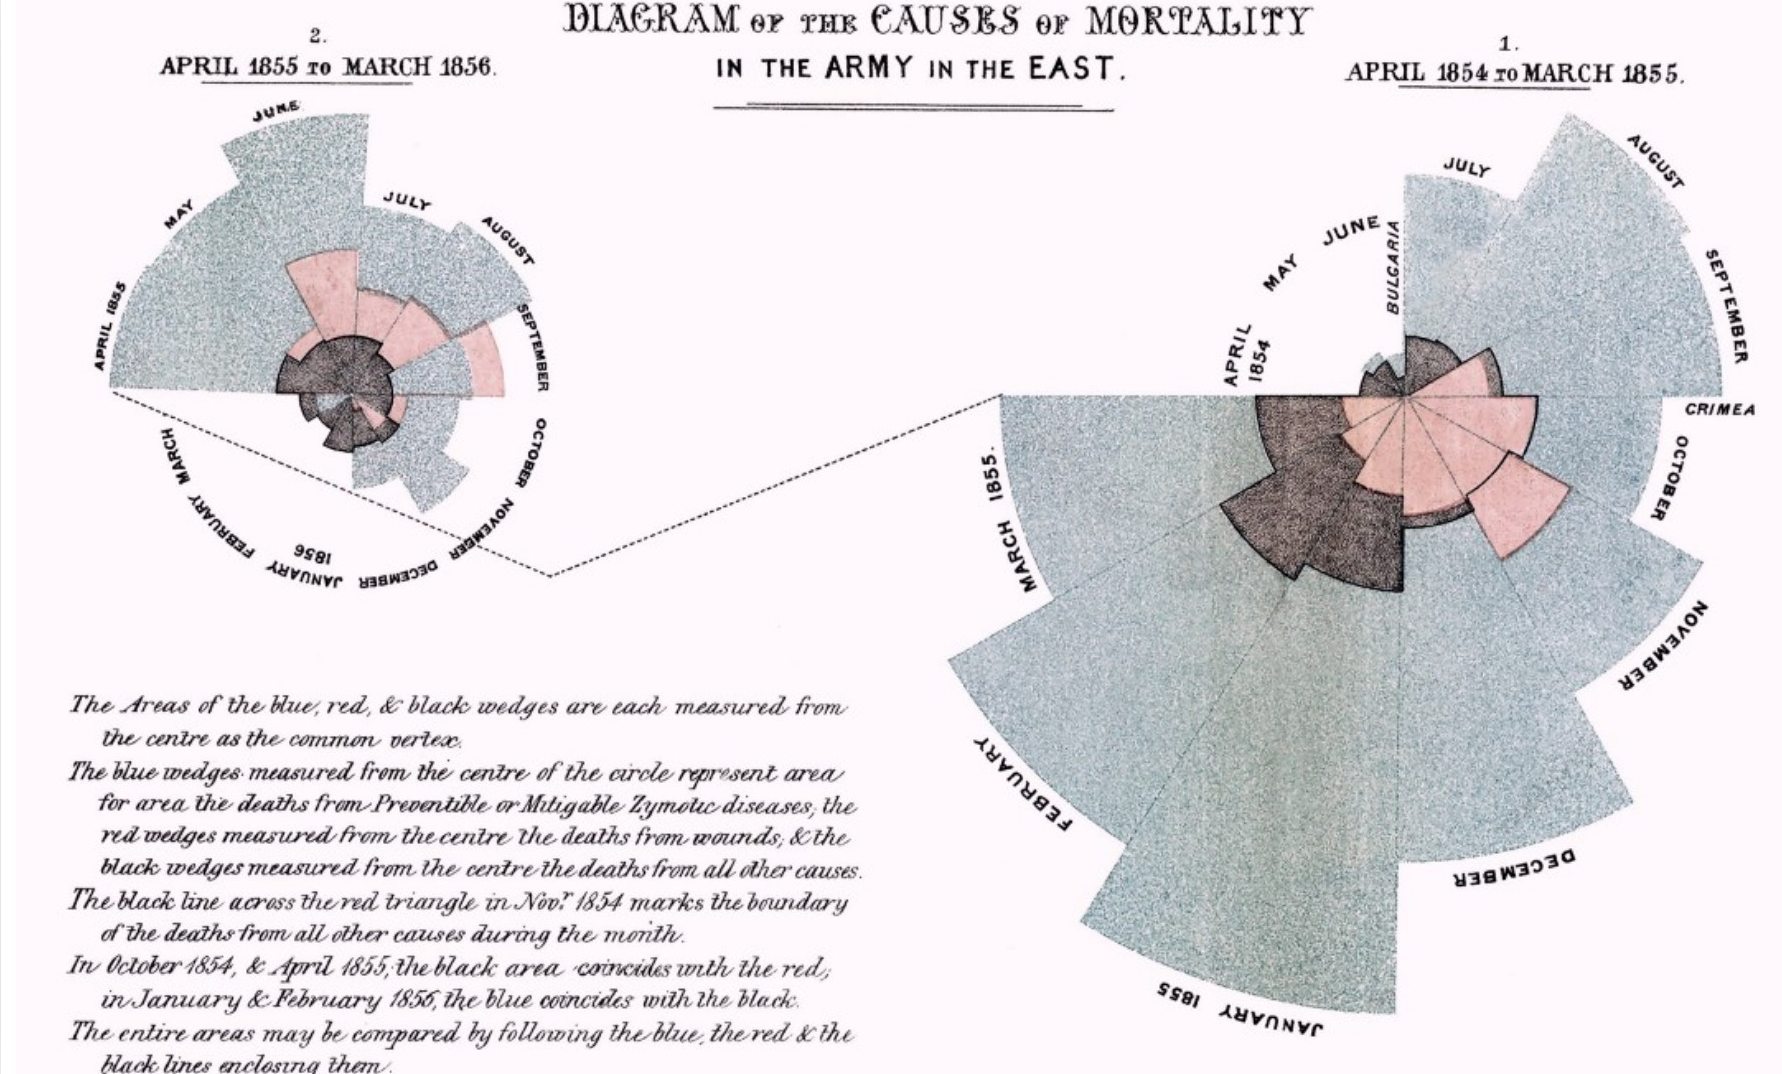 Causas da Mortalidade no Exército do Leste - Florence Nightingale  (Fonte: https://github.com/dipanjanS/art_of_data_visualization)